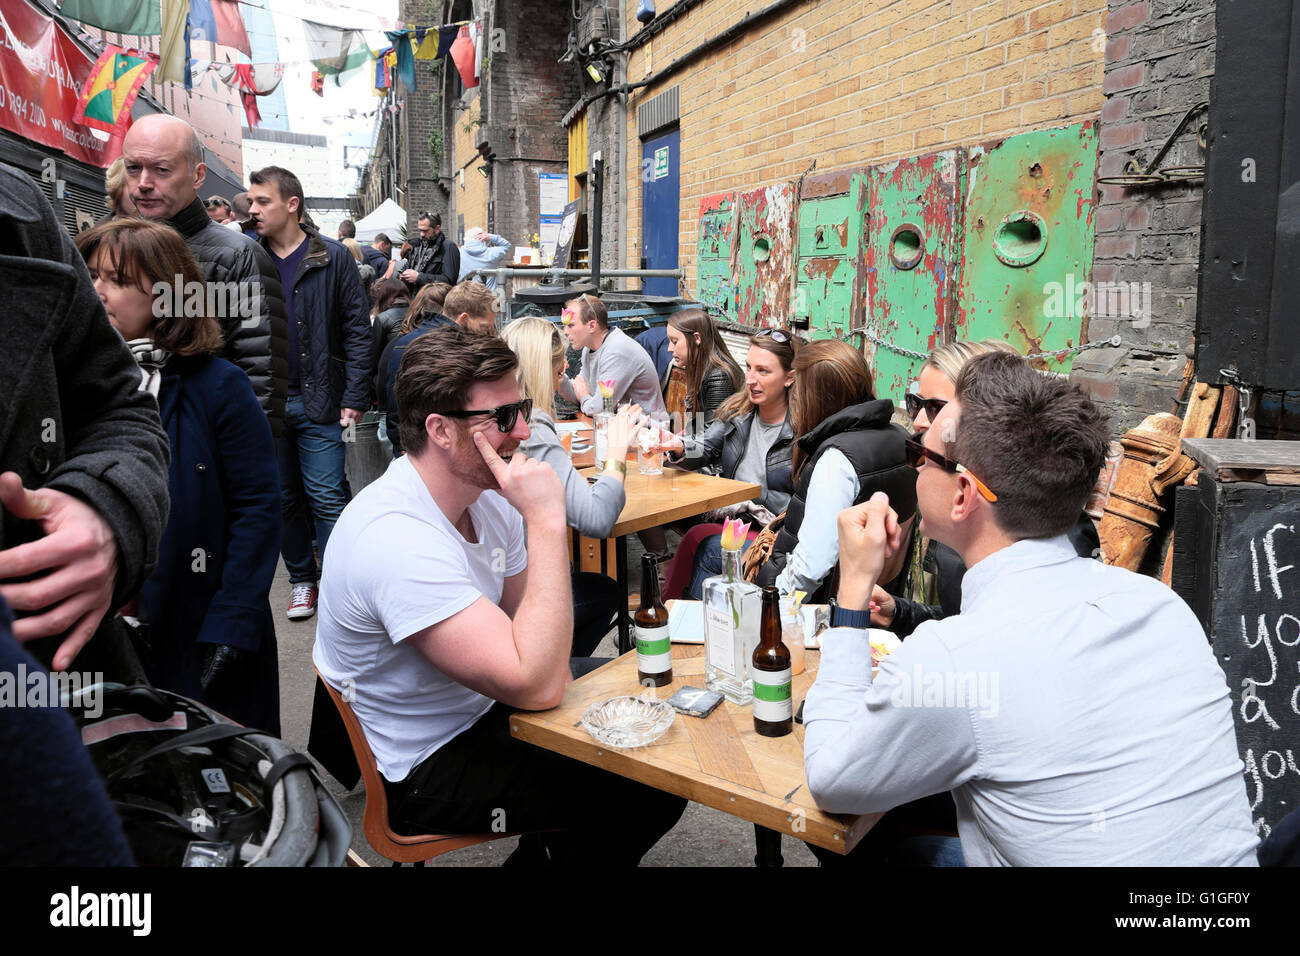 People drinking CRAFT BEER at ROPEWALK street food market under the railway arches Maltby Street in Bermondsey London - Stock Image